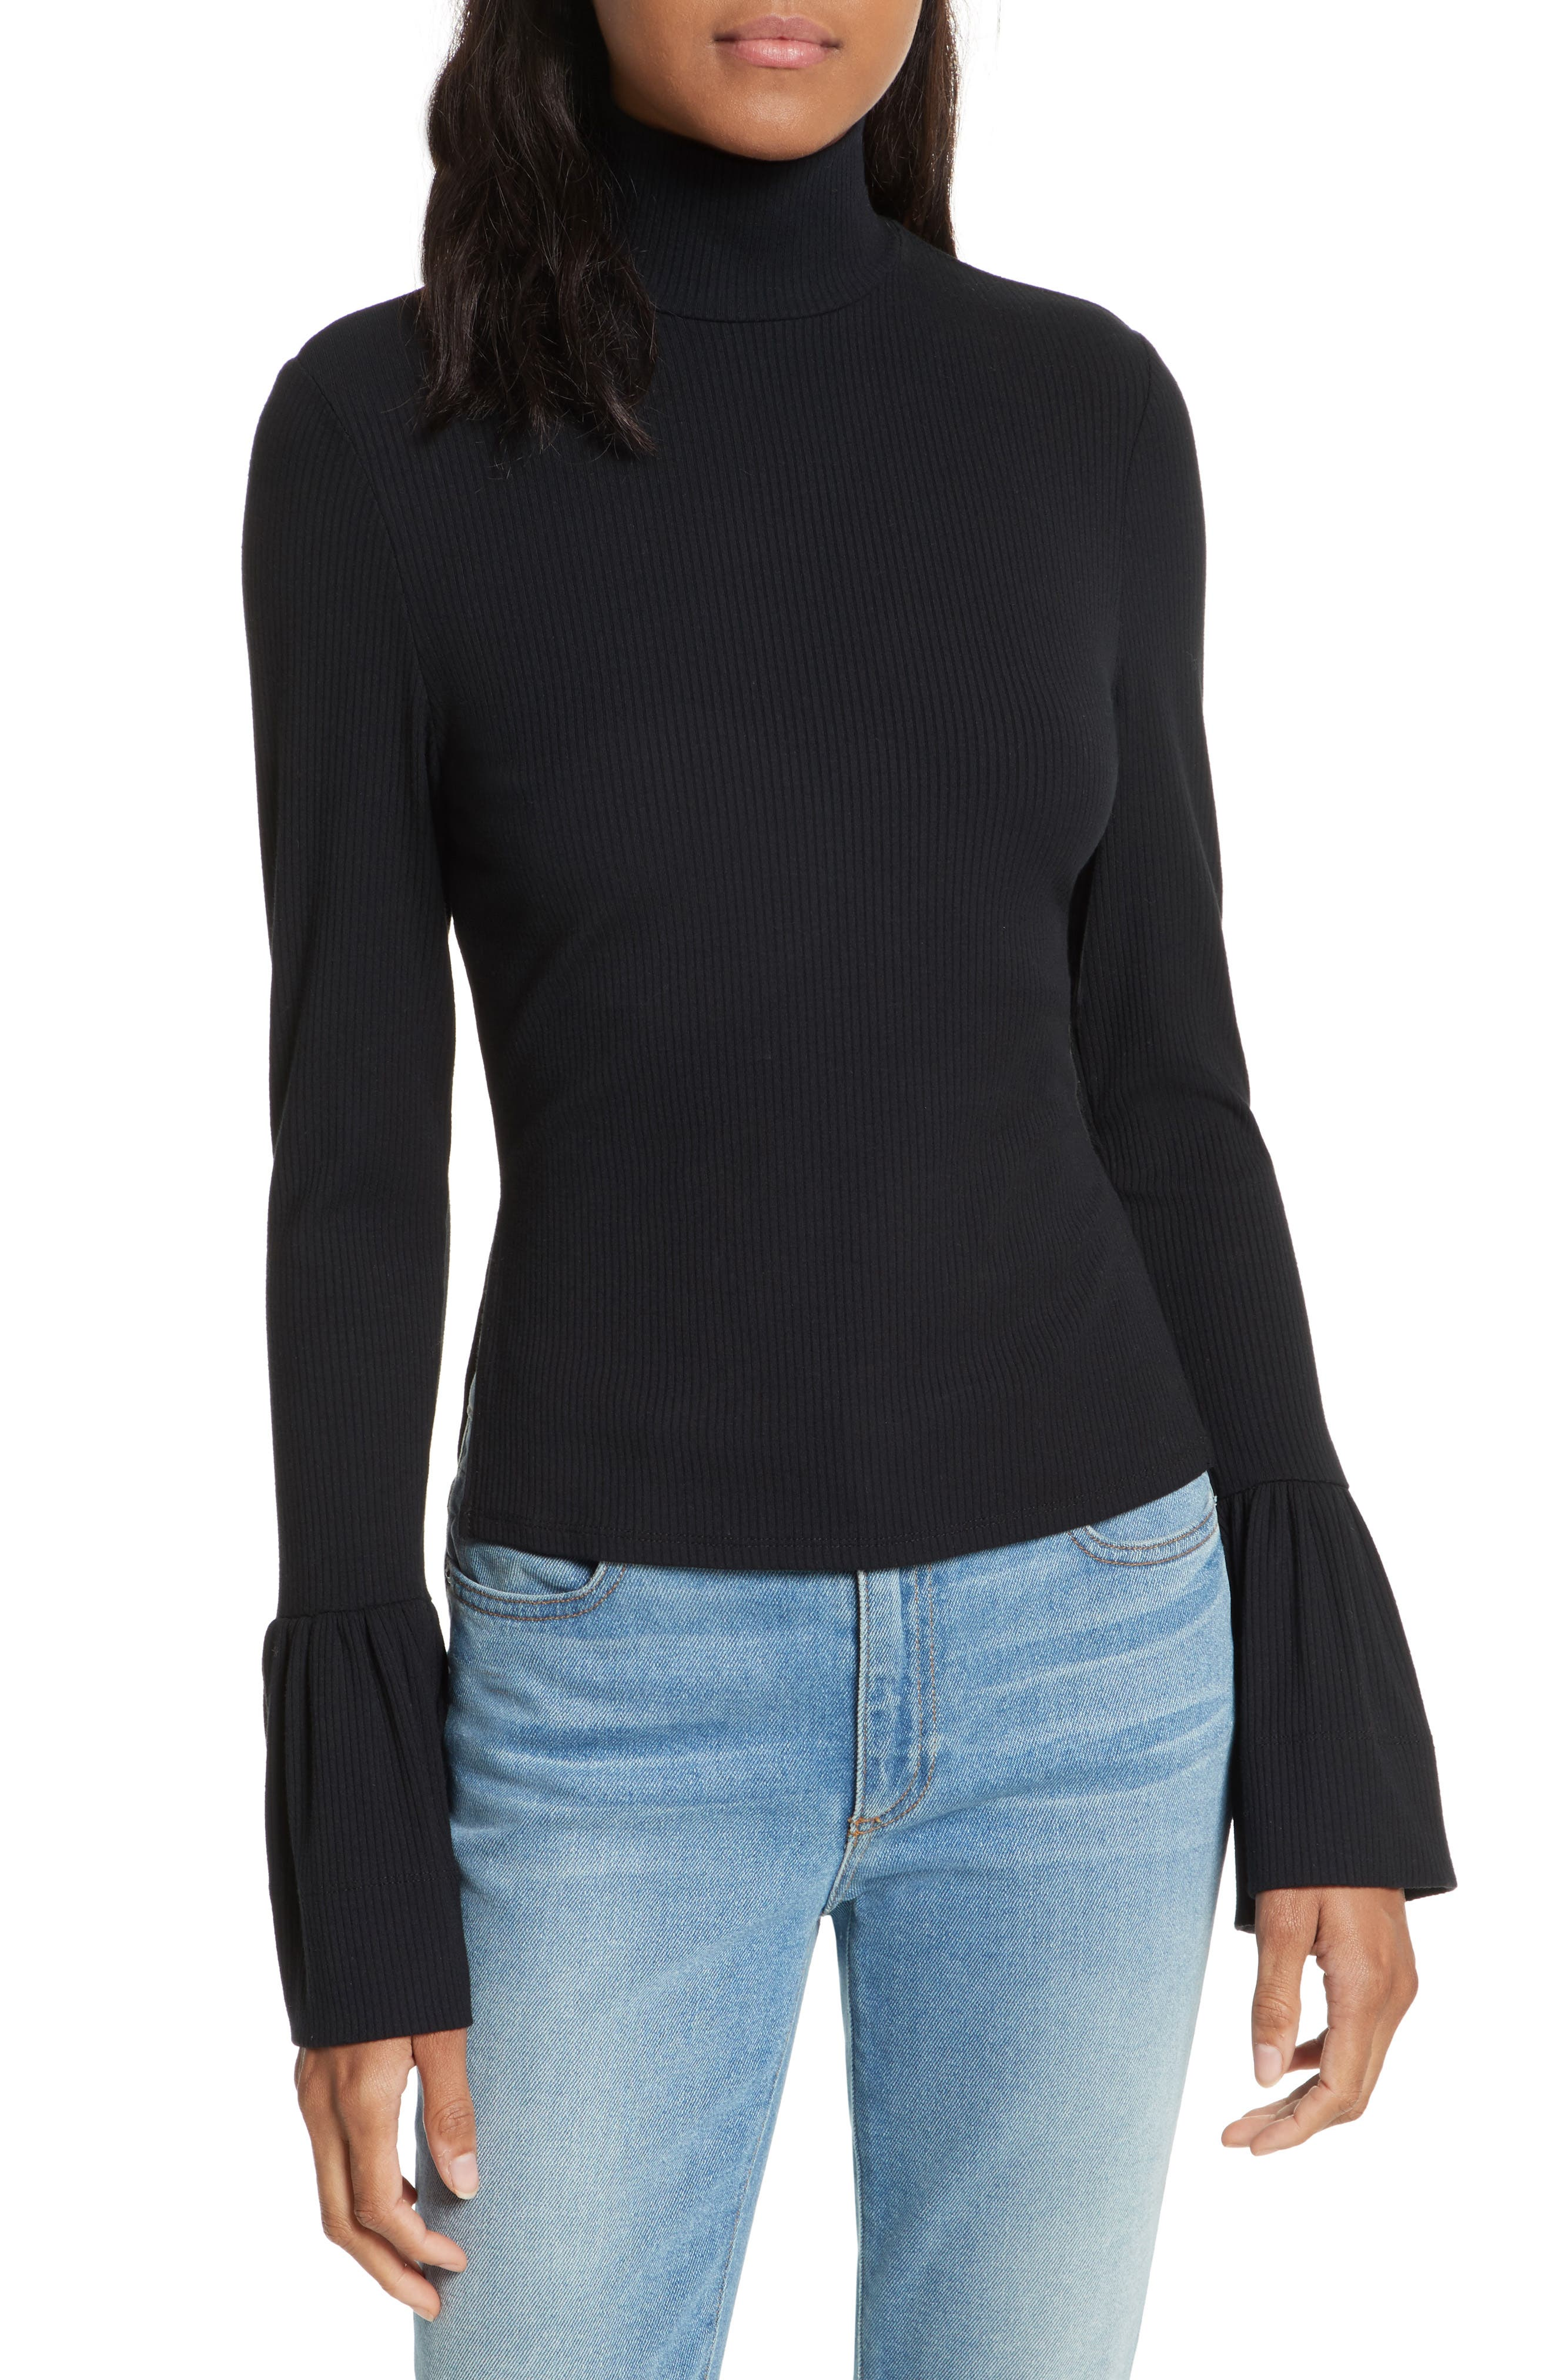 May Bell Sleeve Turtleneck,                         Main,                         color, Black